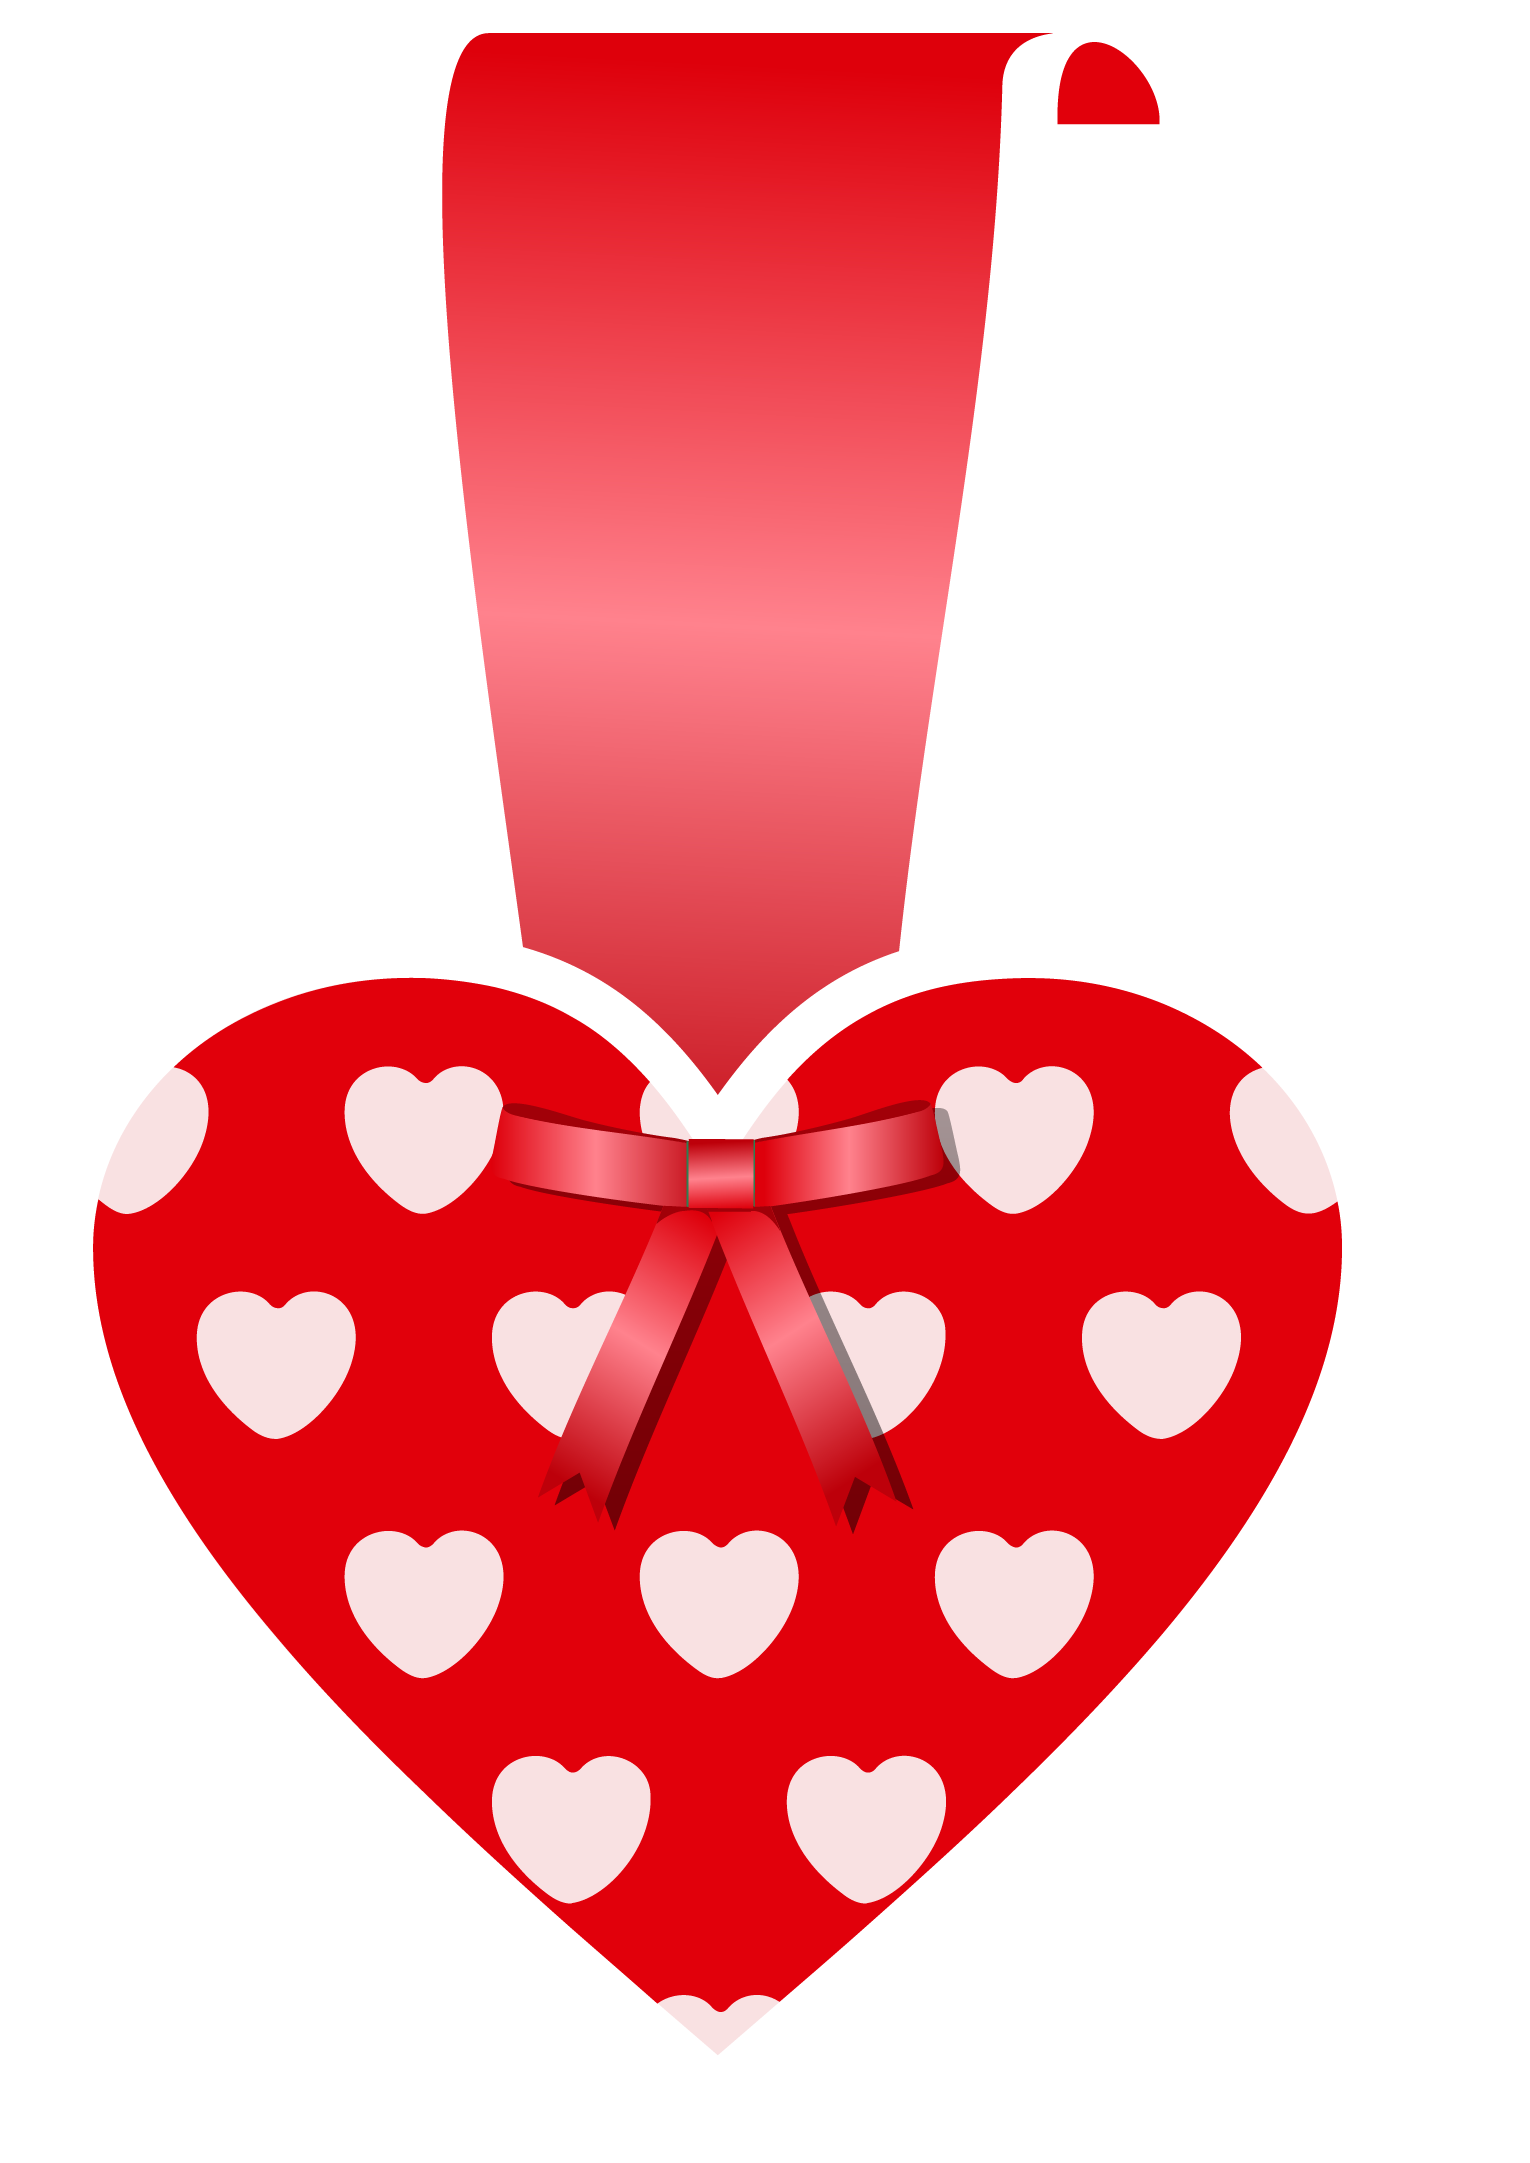 Decorative heart png. Clipart picture gallery yopriceville